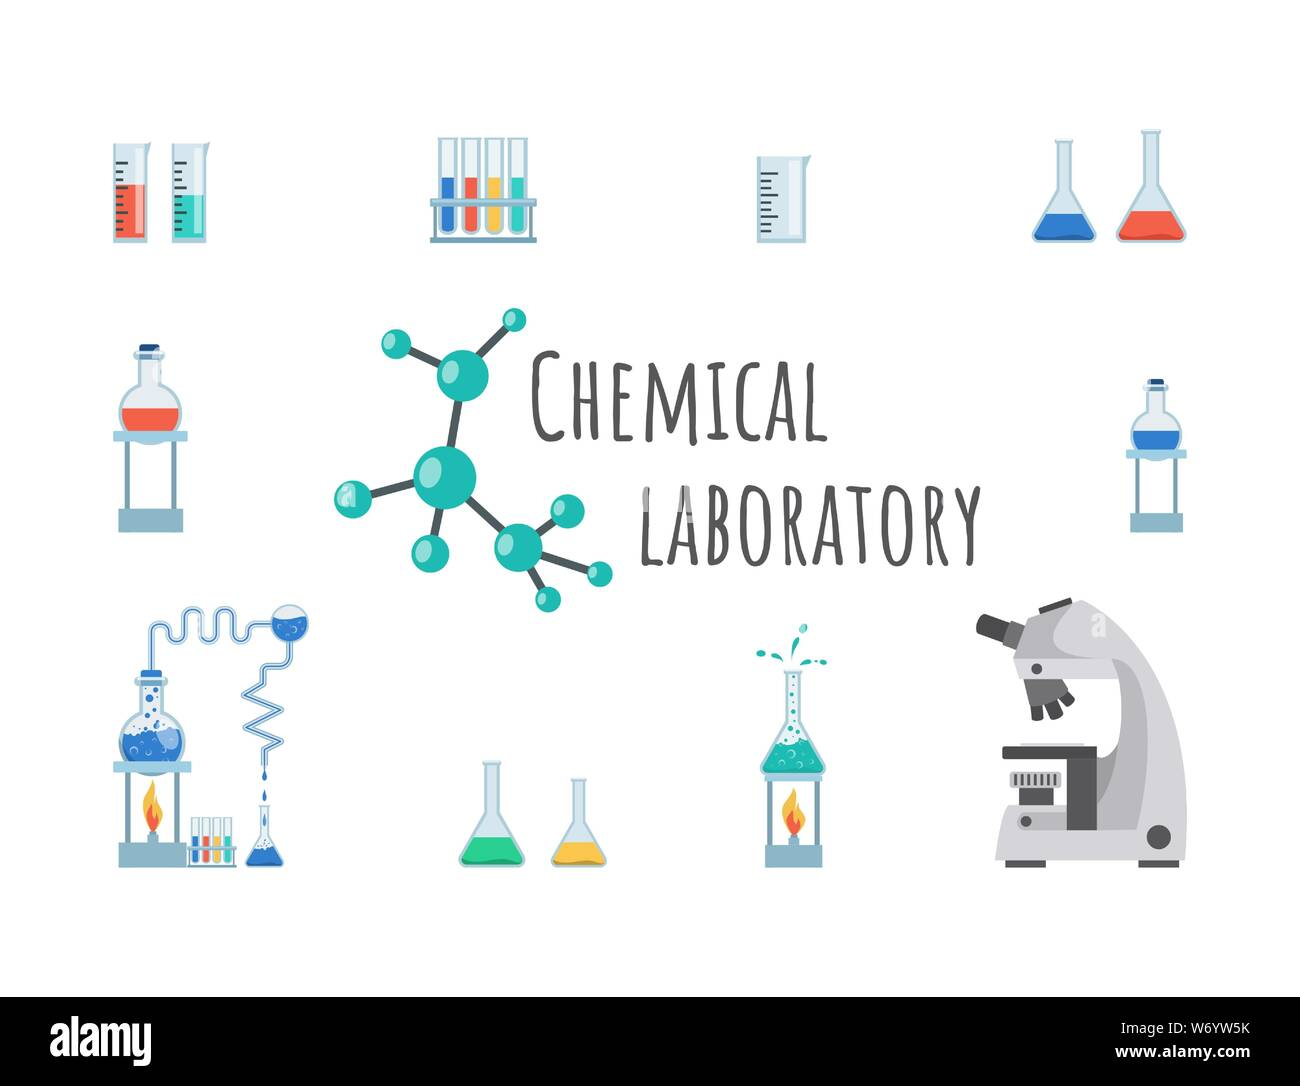 Chemical laboratory equipment vector banner template. Lab glassware, beakers, flasks and test tubes. Modern high precision microscope, measuring cup on innovative research center poster design Stock Vector